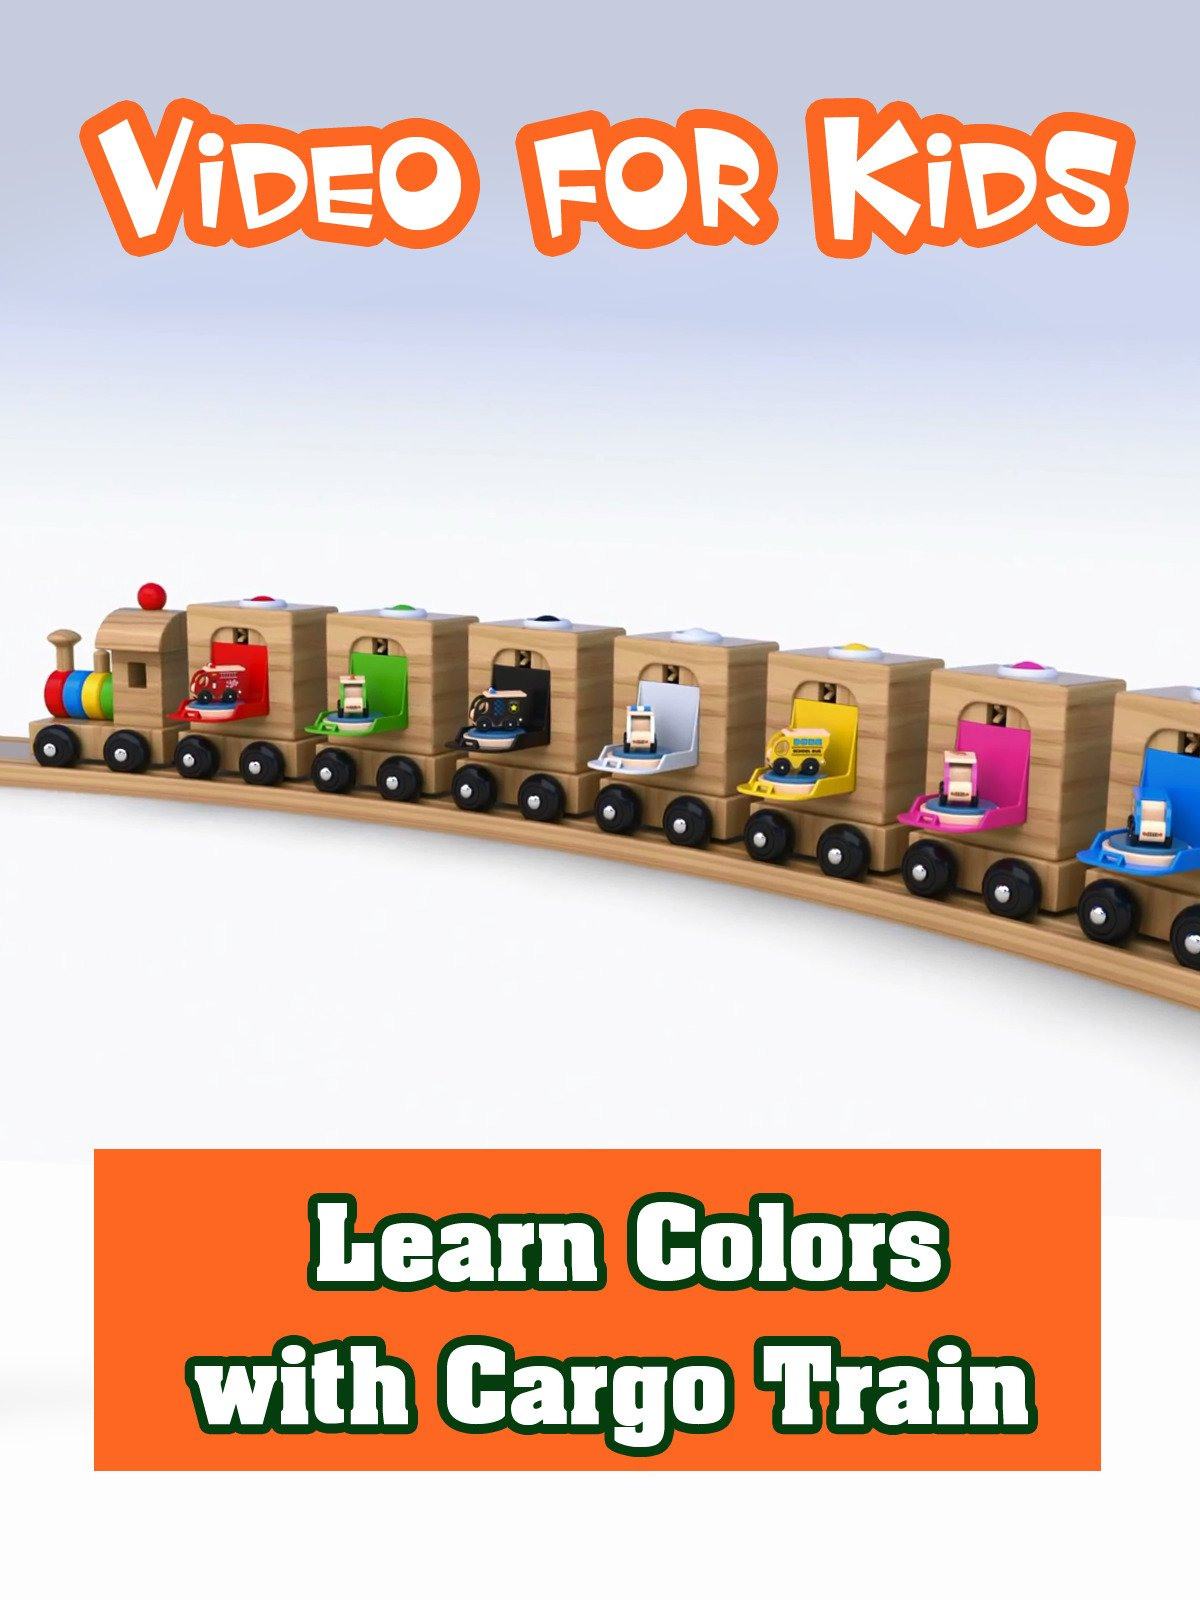 Learn Colors with Cargo Train